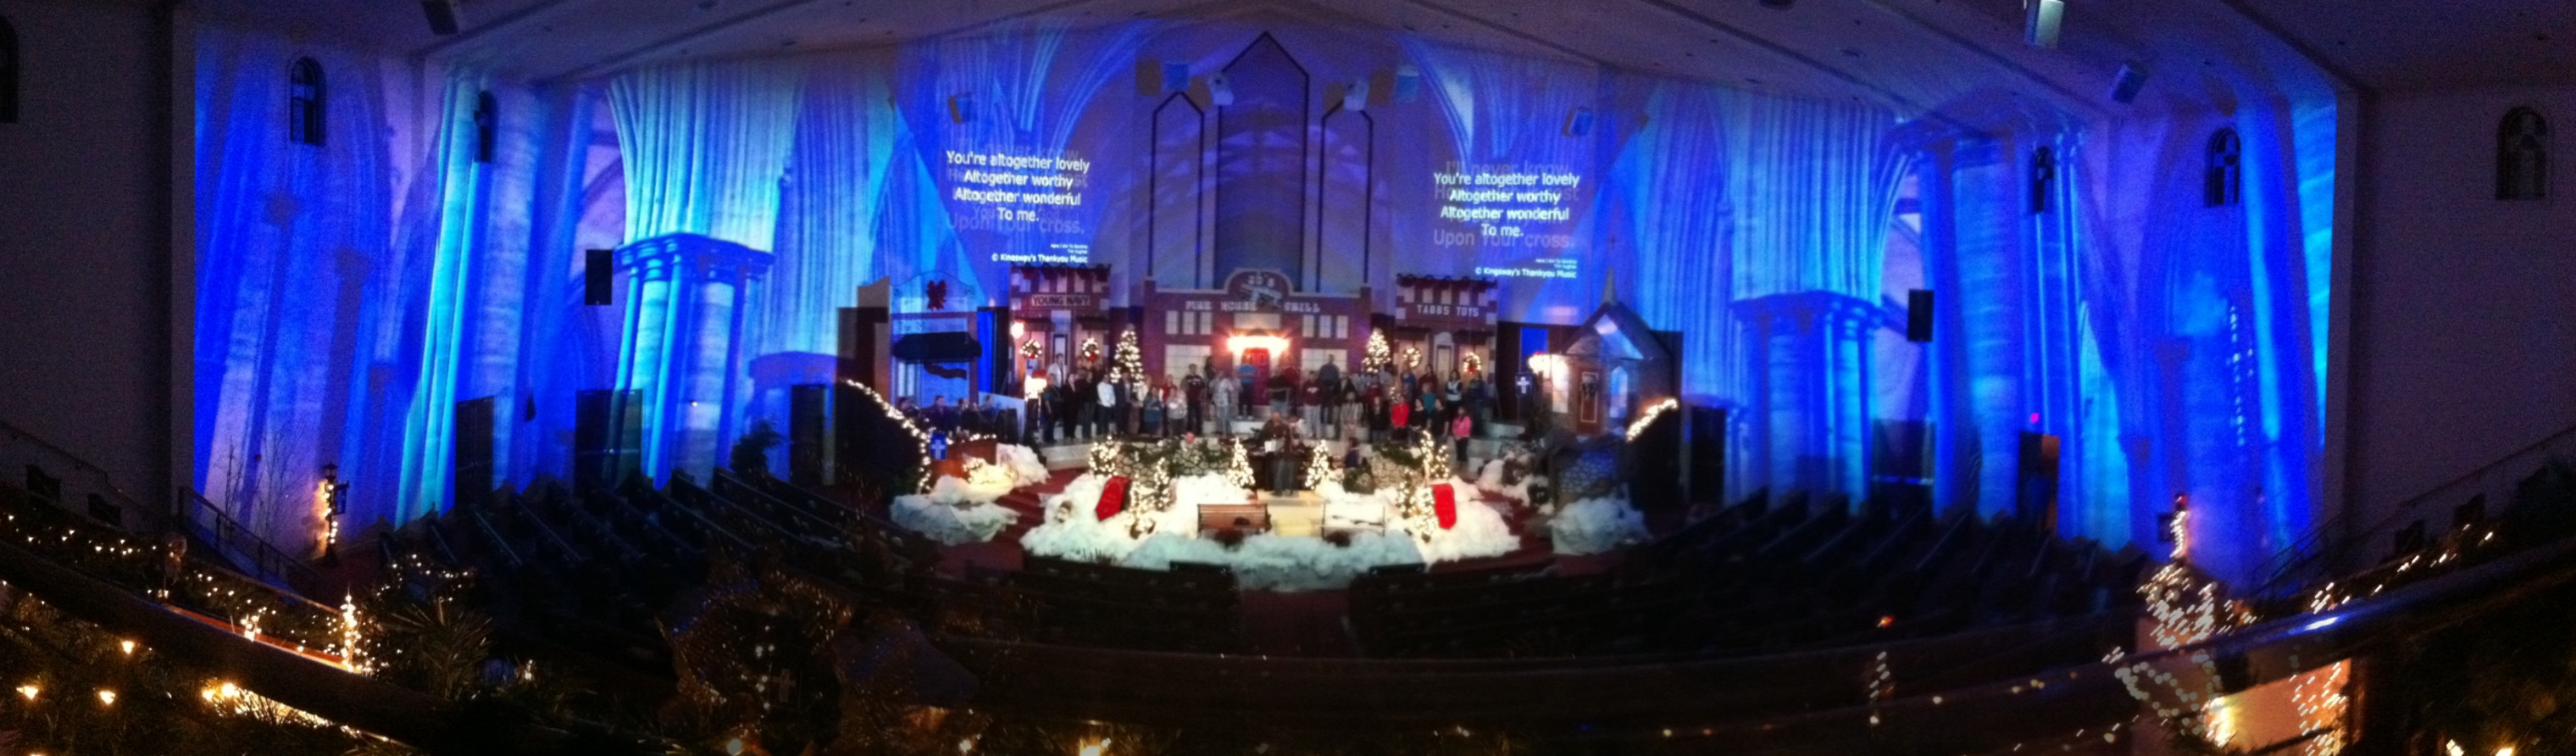 Environmental Projection in church